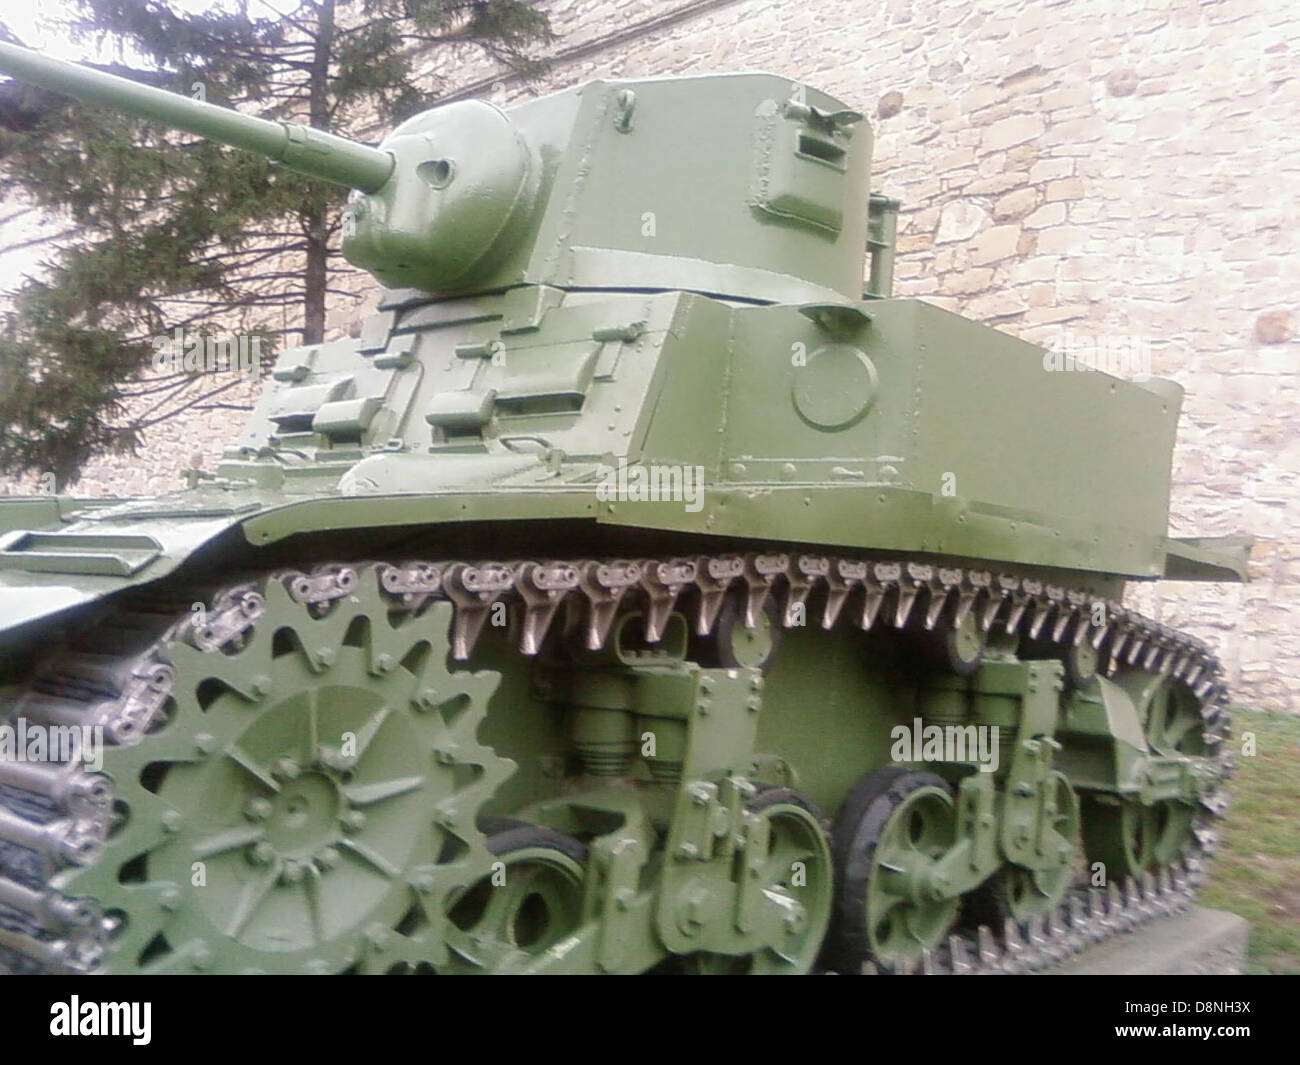 World war two fight tank. - Stock Image